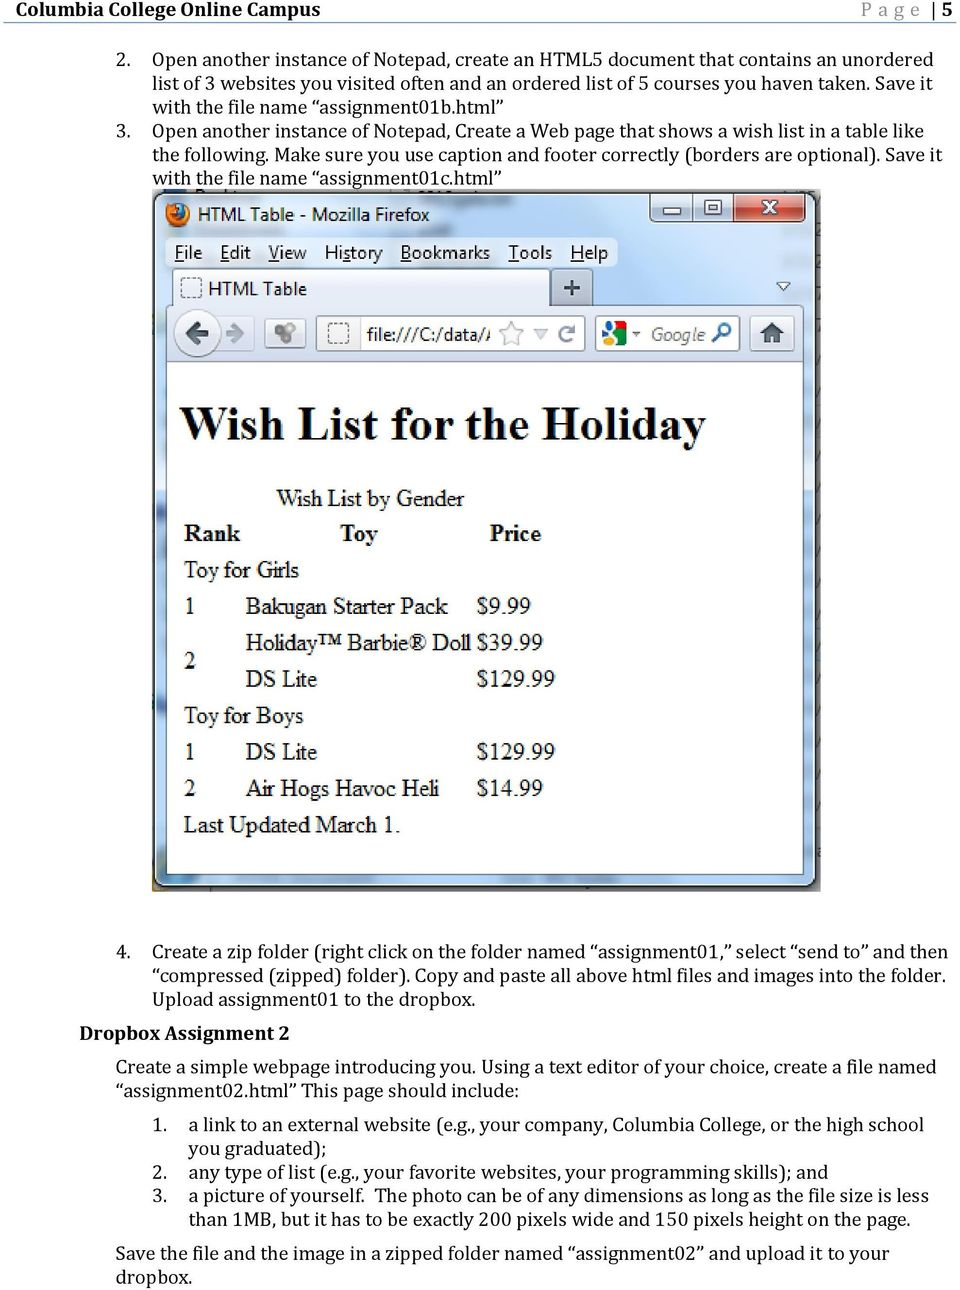 Save it with the file name assignment01b.html 3. Open another instance of Notepad, Create a Web page that shows a wish list in a table like the following.